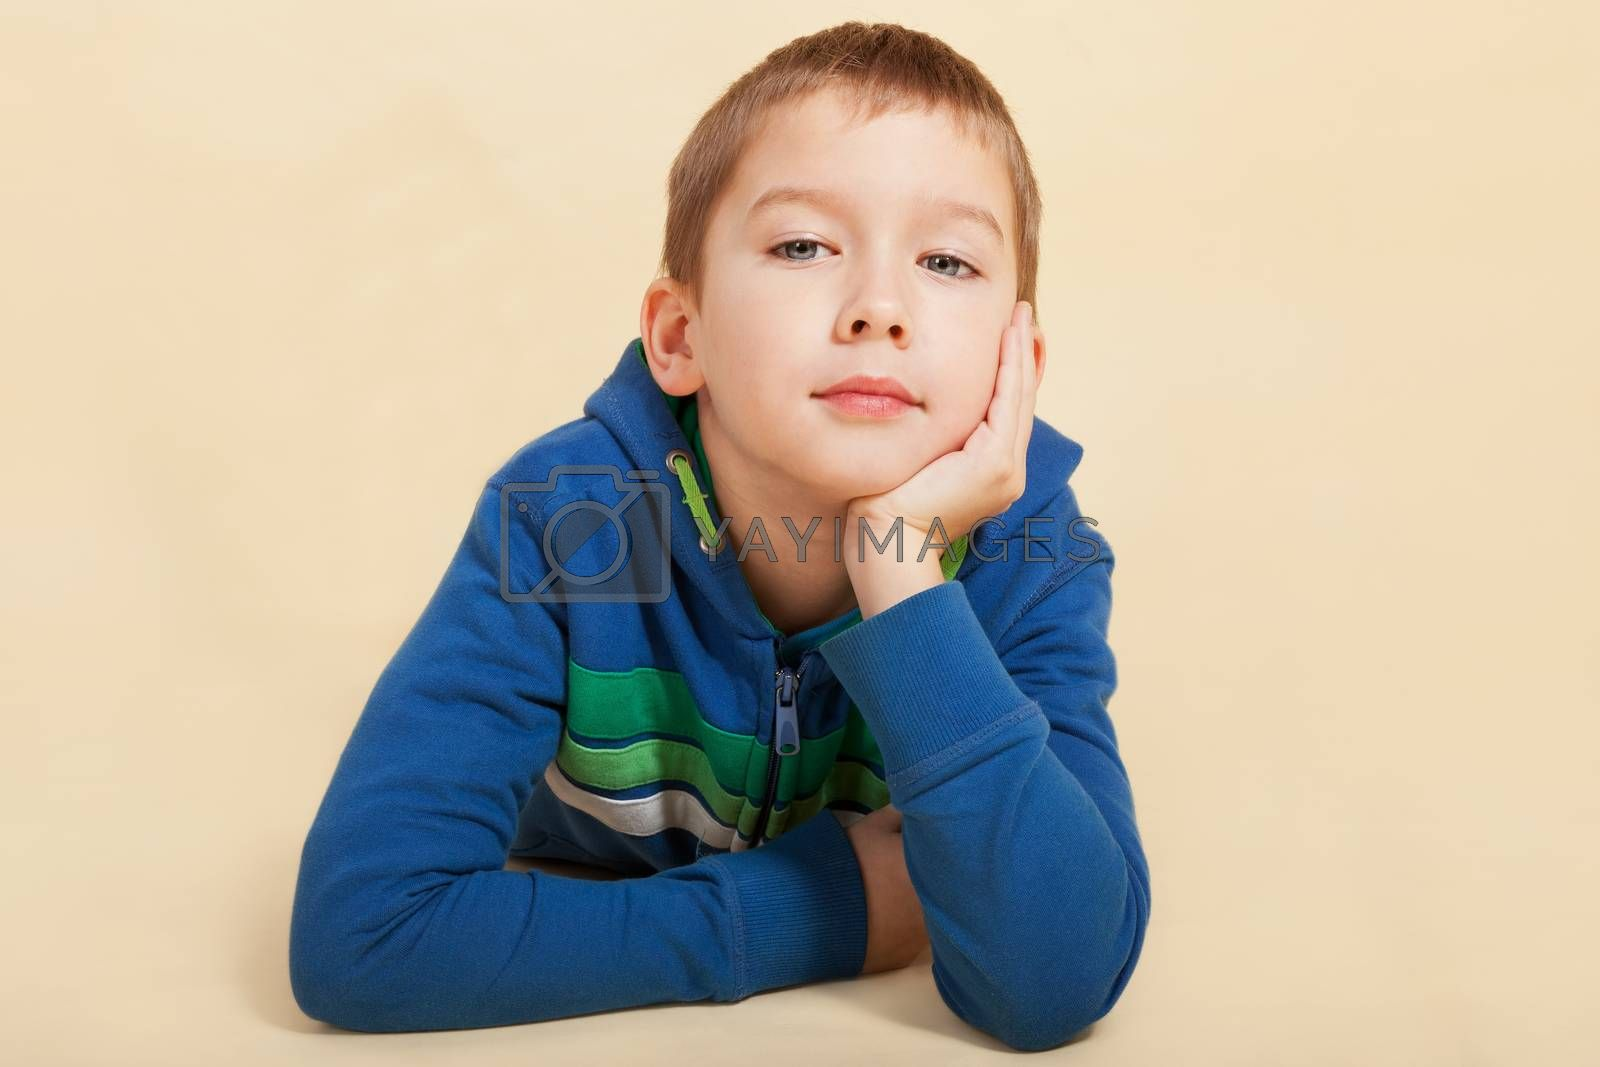 Young boy lying on the ground, looking into the camera with a smile and thinking. Youth concept